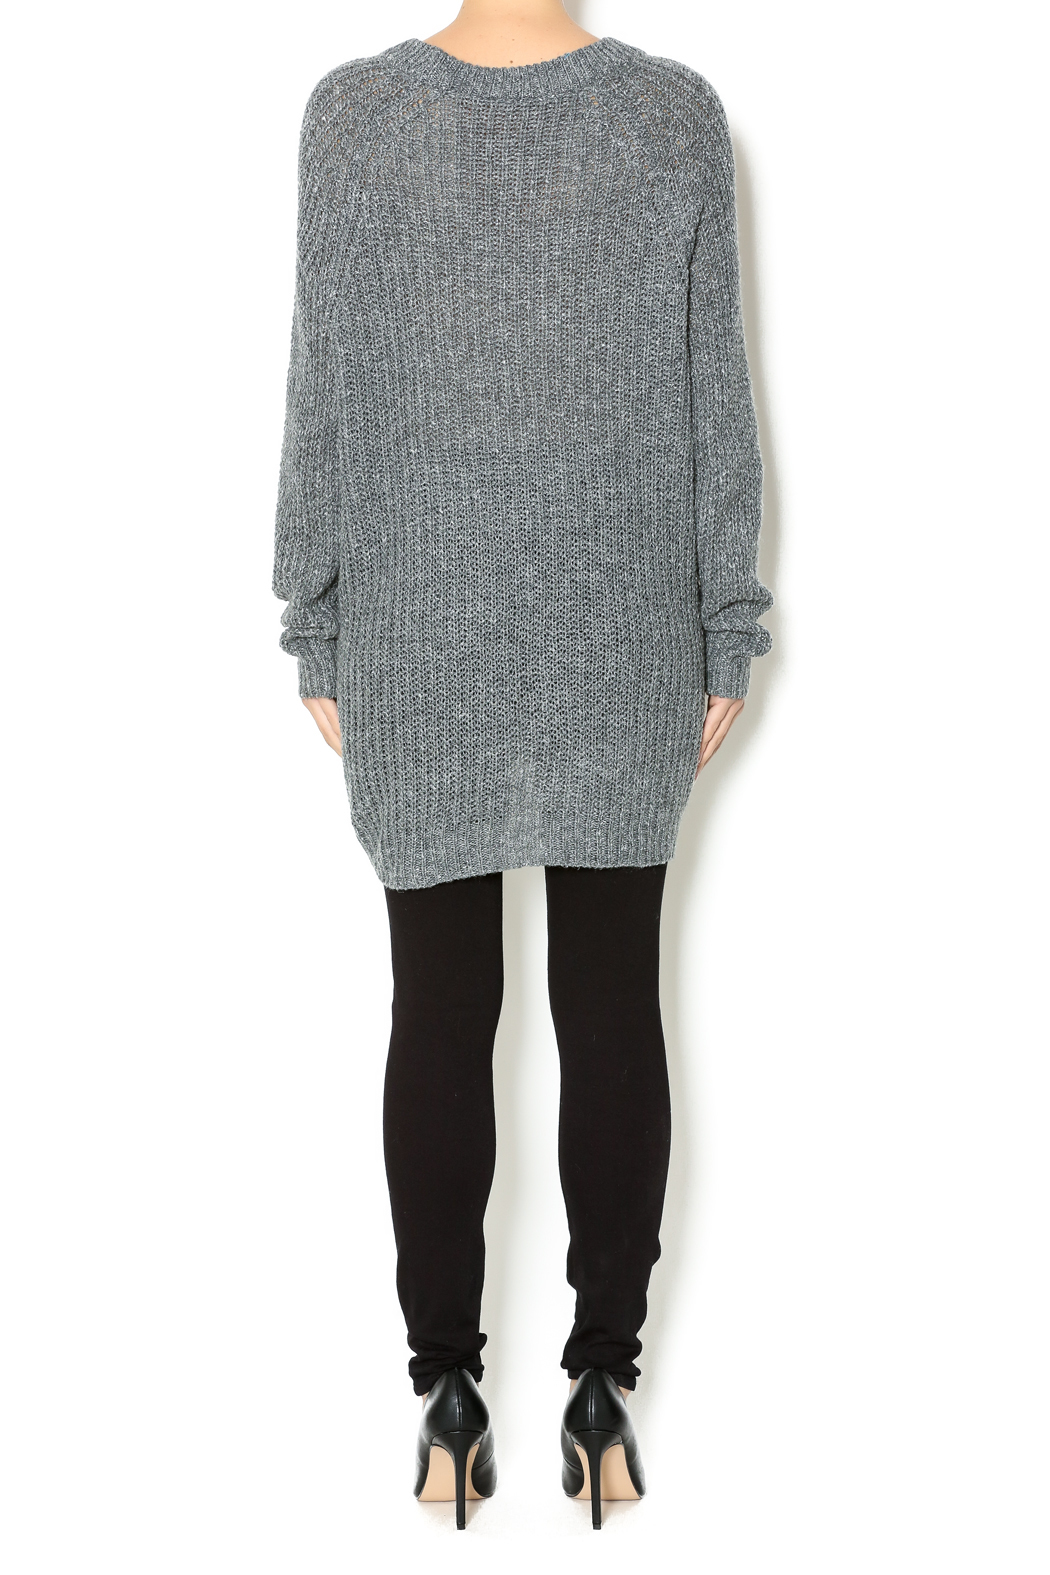 Gentle Fawn East Sweater Tunic from Cincinnati by Trend — Shoptiques